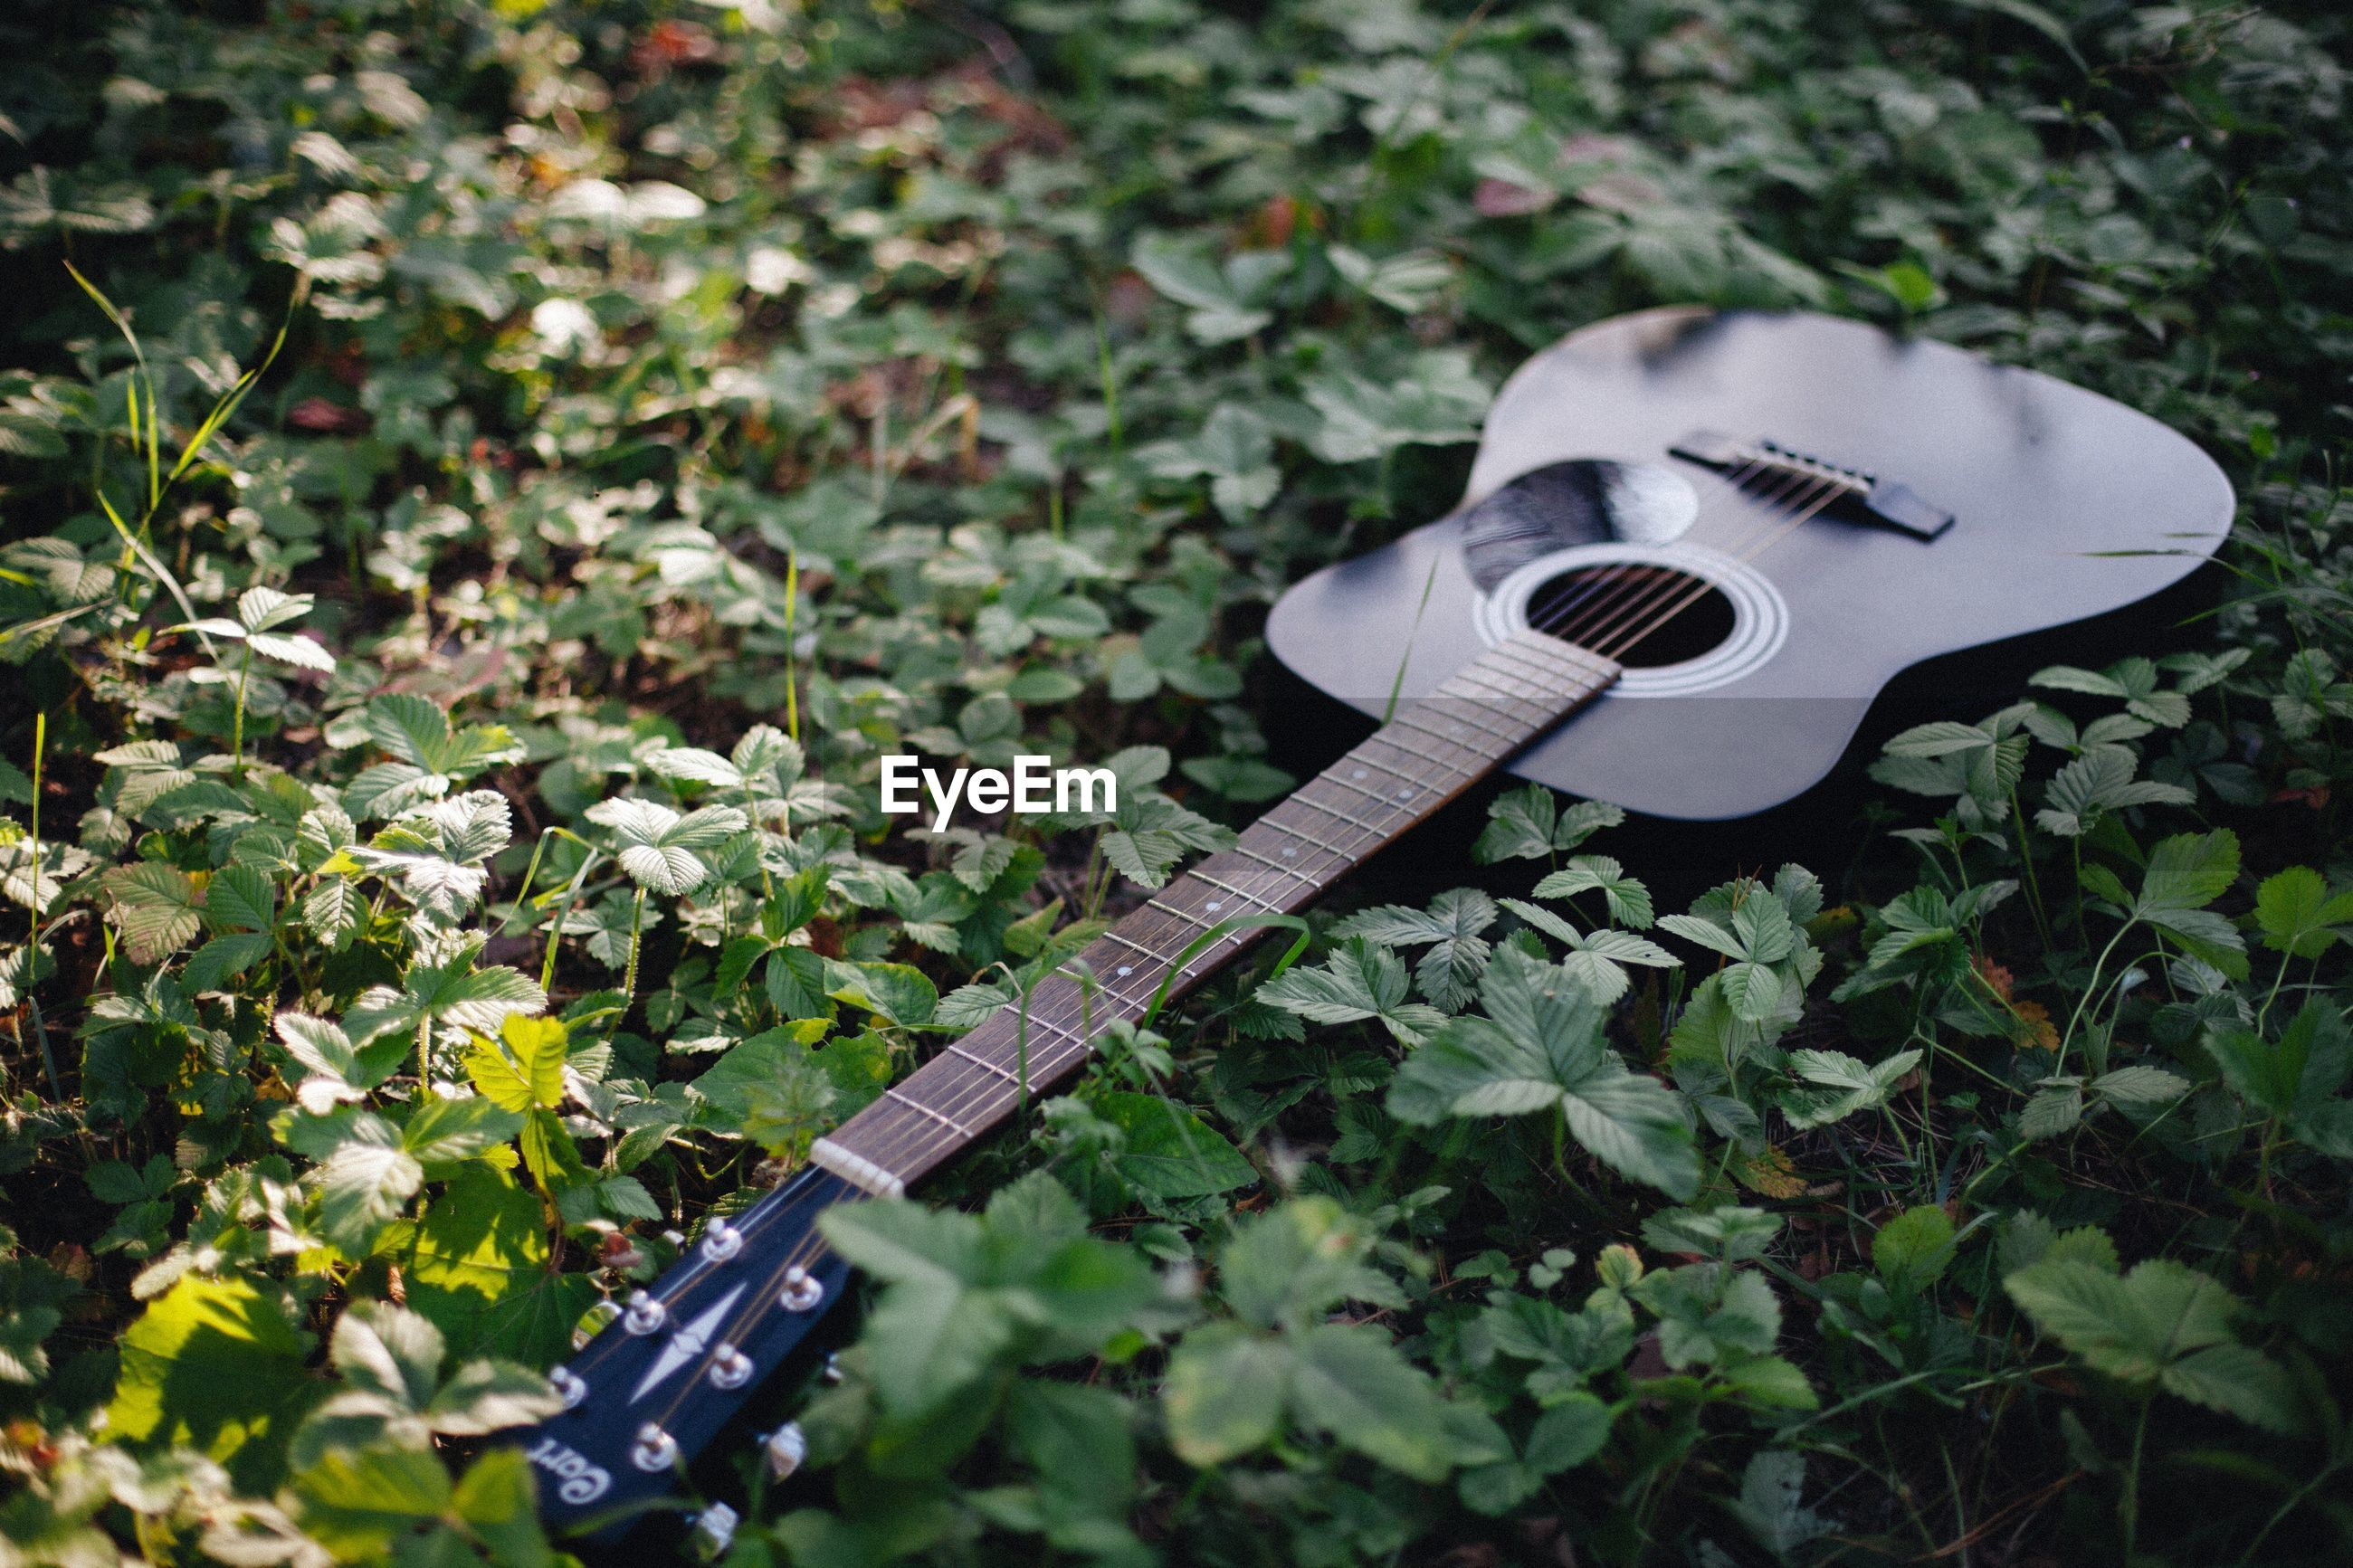 CLOSE-UP OF GUITAR ON PLANTS